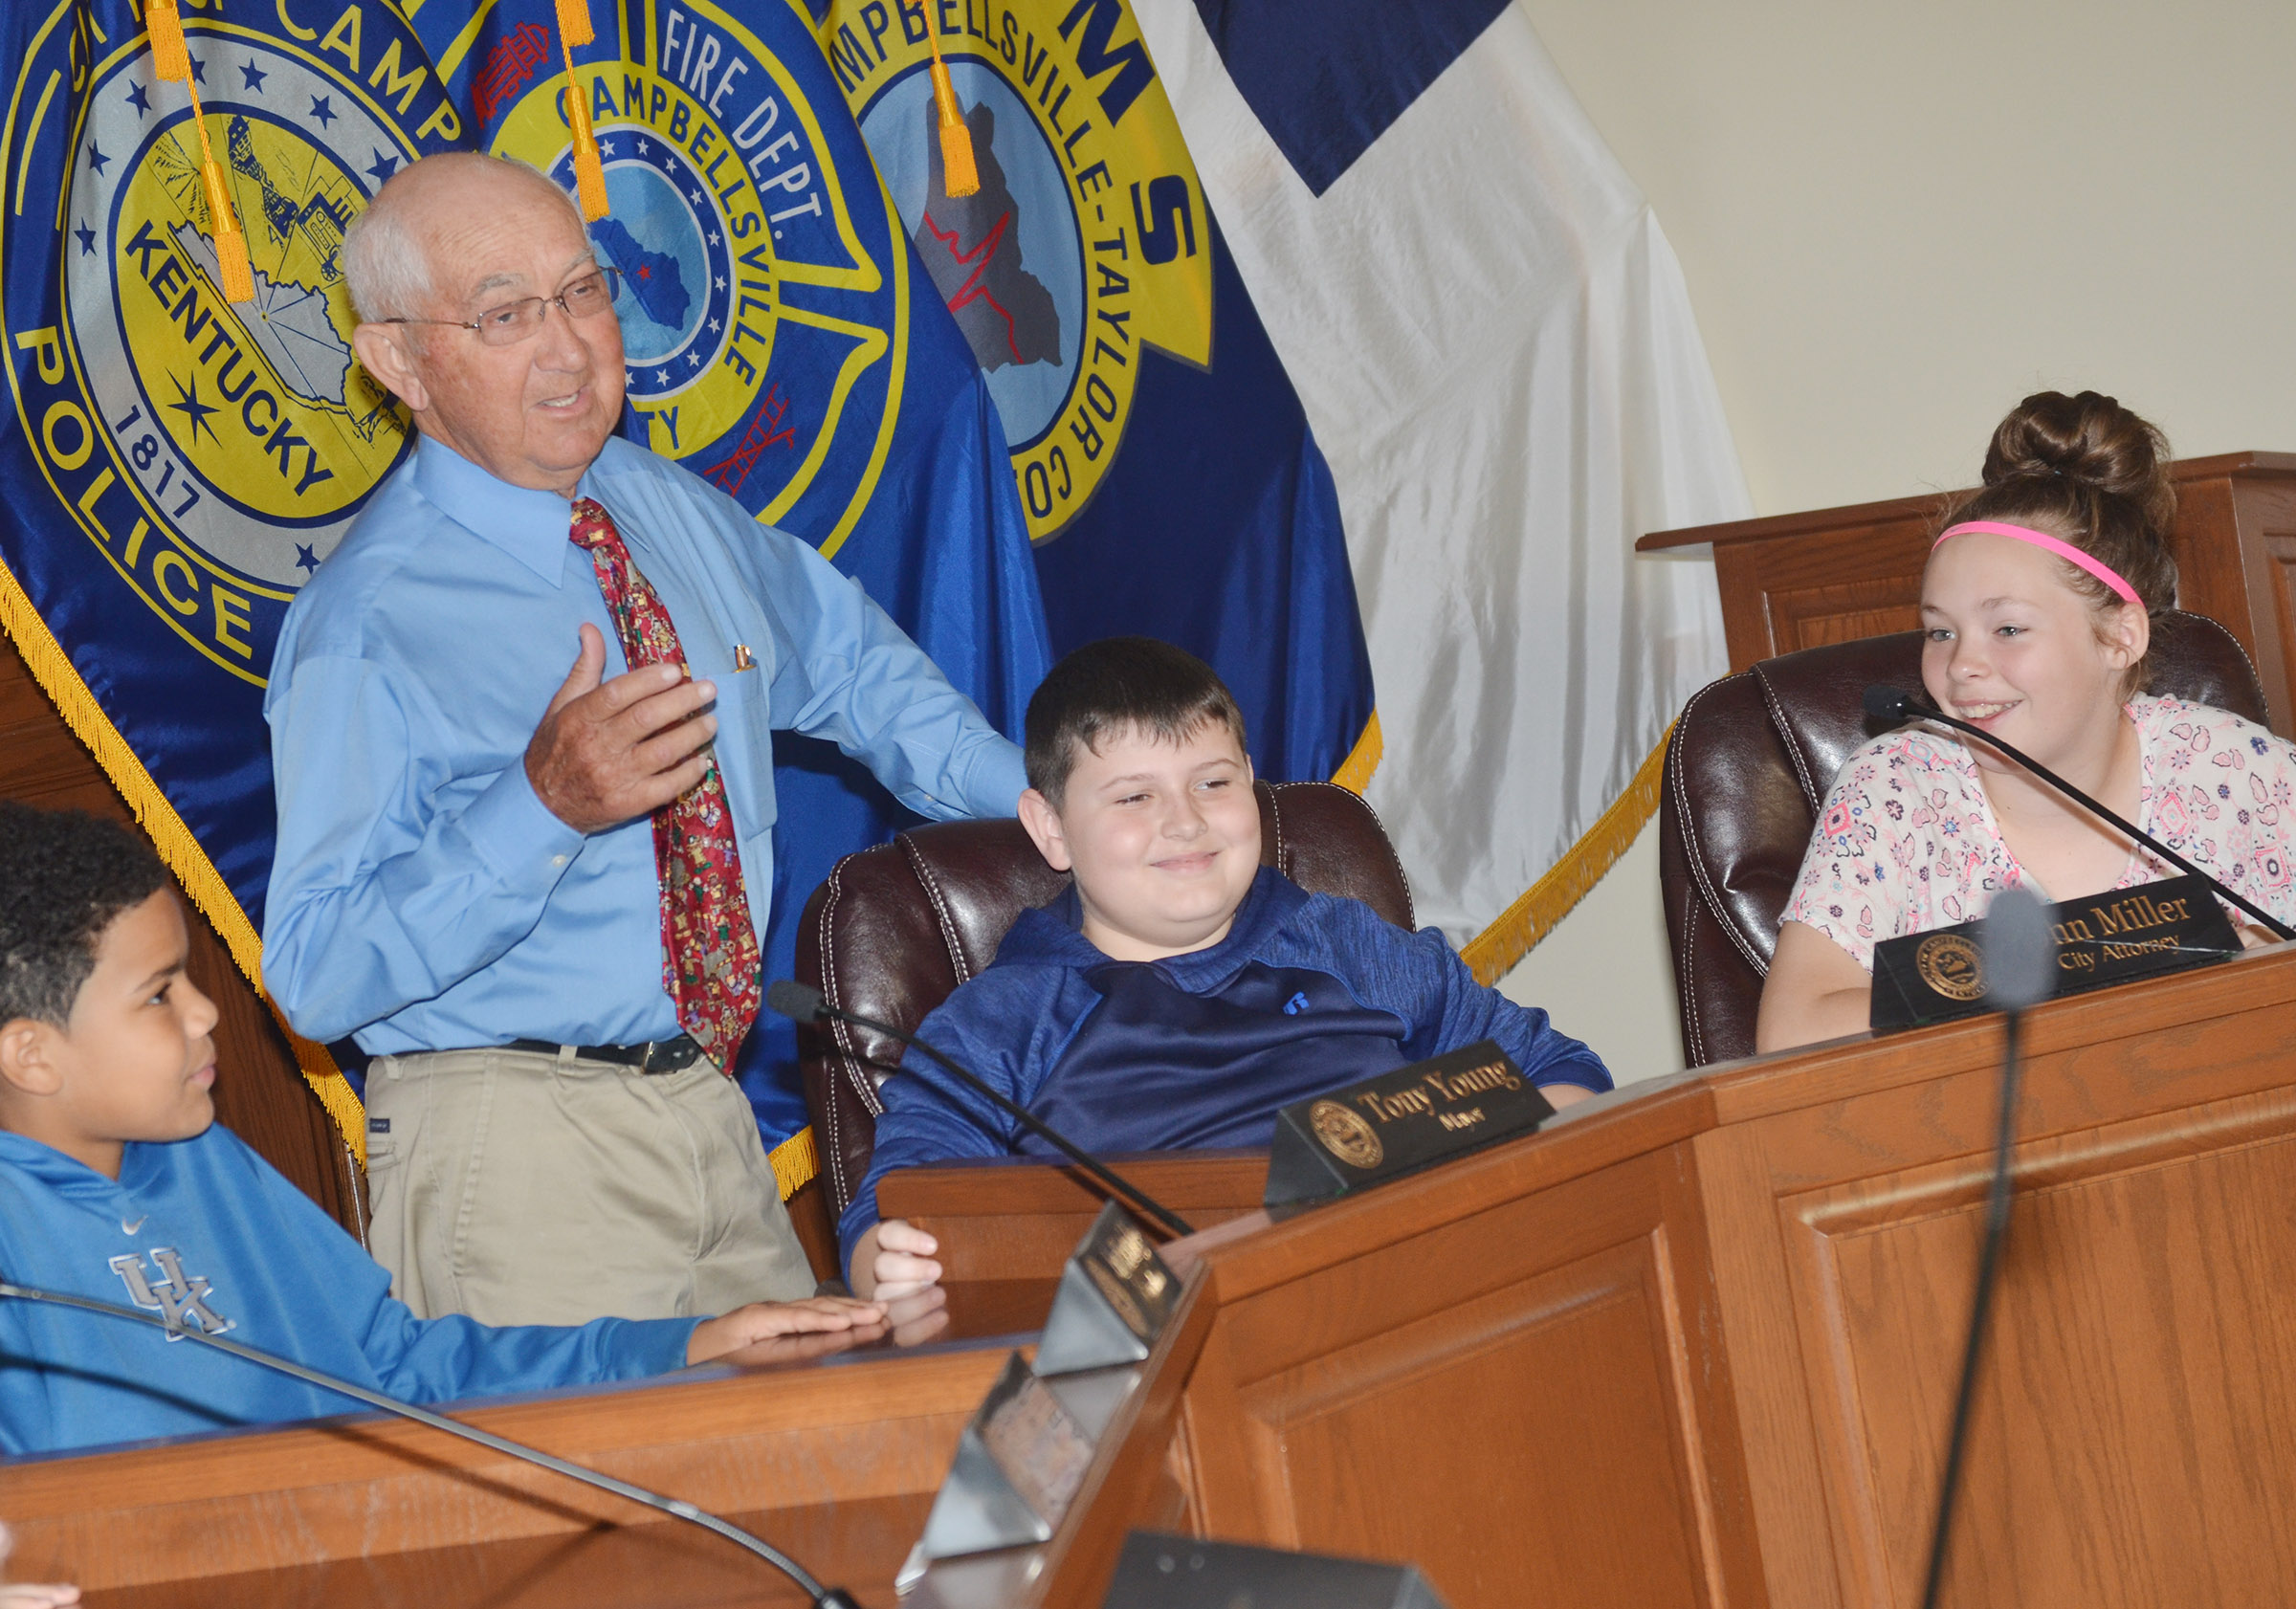 Former Campbellsville Mayor Paul Osborne talks to CMS fifth-graders about the city attorney's job. Fifth-grader Dawson Creason portrayed the city attorney.